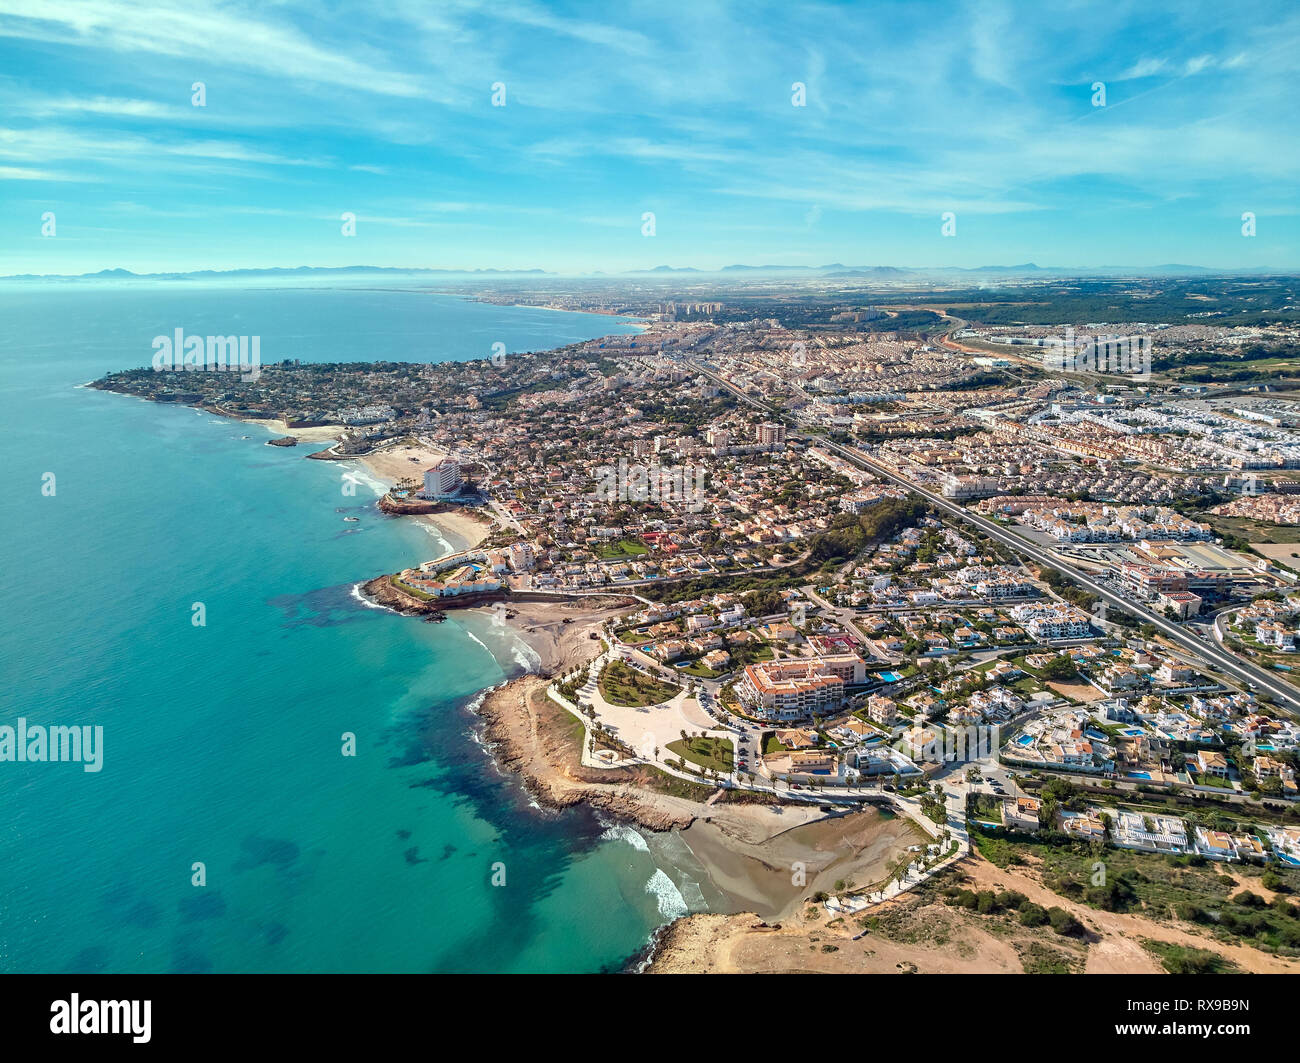 Costa Blanca view from above, drone point of view aerial photography. Turquoise green water rocky coastline, sandy beaches. Cityscape of Torrevieja, O - Stock Image